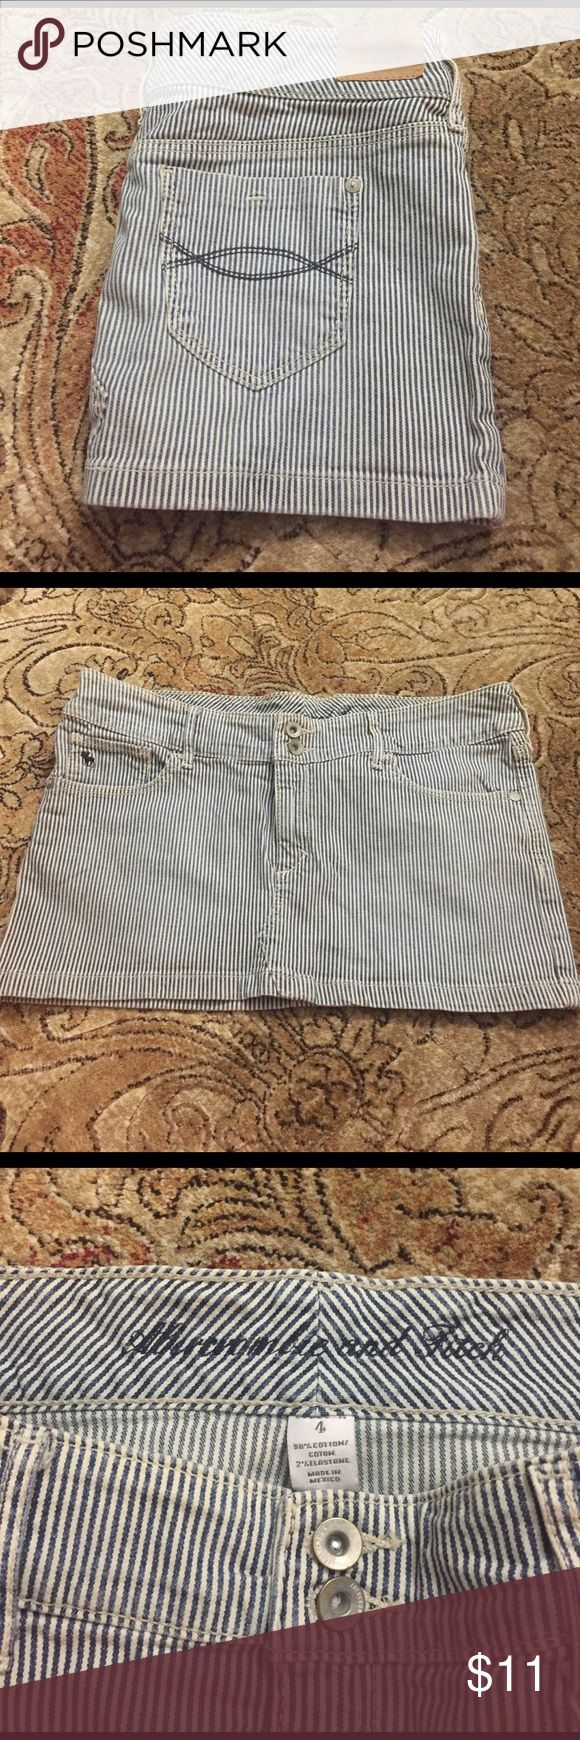 Abercrombie and fitch blue & white striped skirt Abercrombie and Fitch Blue and white pinstriped miniskirt. Worn once, in great condition. Abercrombie & Fitch Skirts Mini